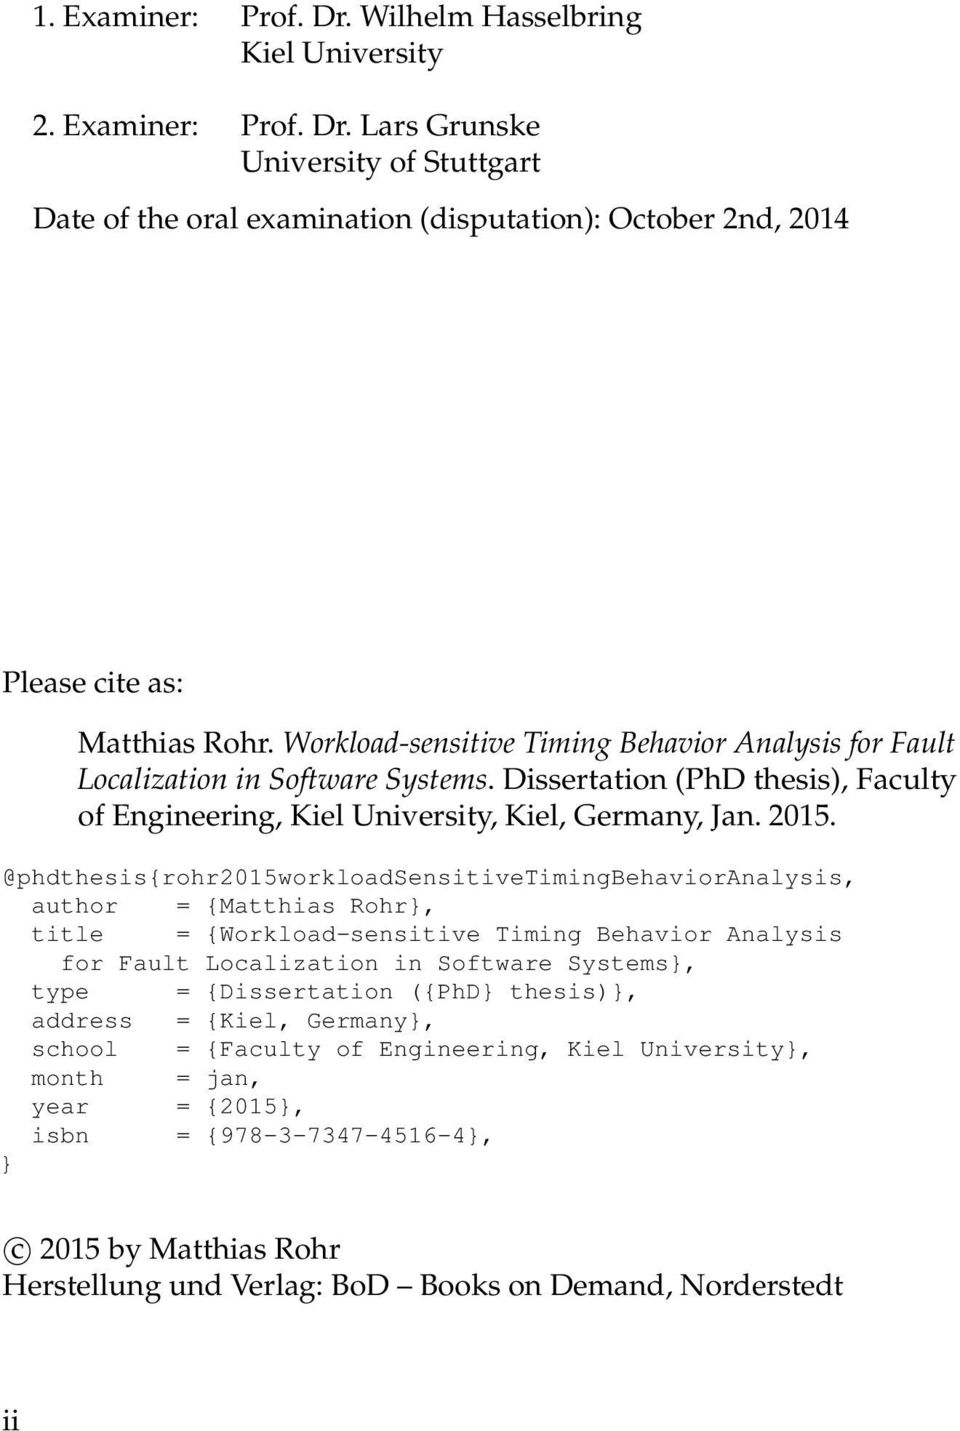 @phdthesis{rohr2015workloadsensitivetimingbehavioranalysis, author = {Matthias Rohr}, title = {Workload-sensitive Timing Behavior Analysis for Fault Localization in Software Systems}, type =